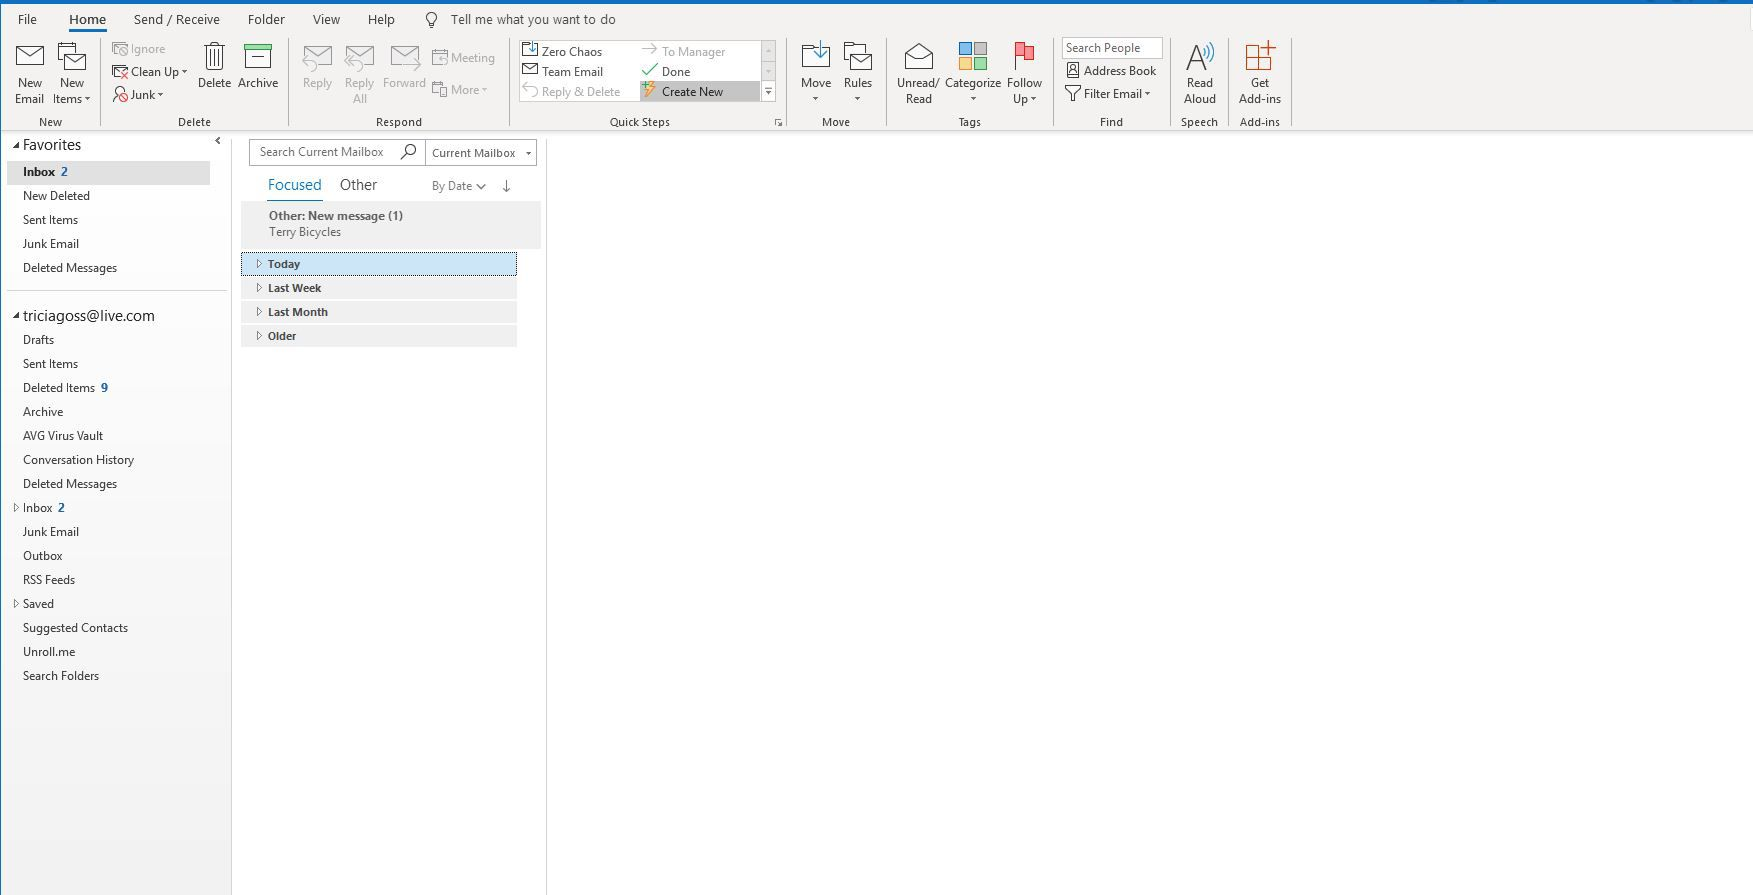 How to Move Emails to Folders with One Click in Outlook